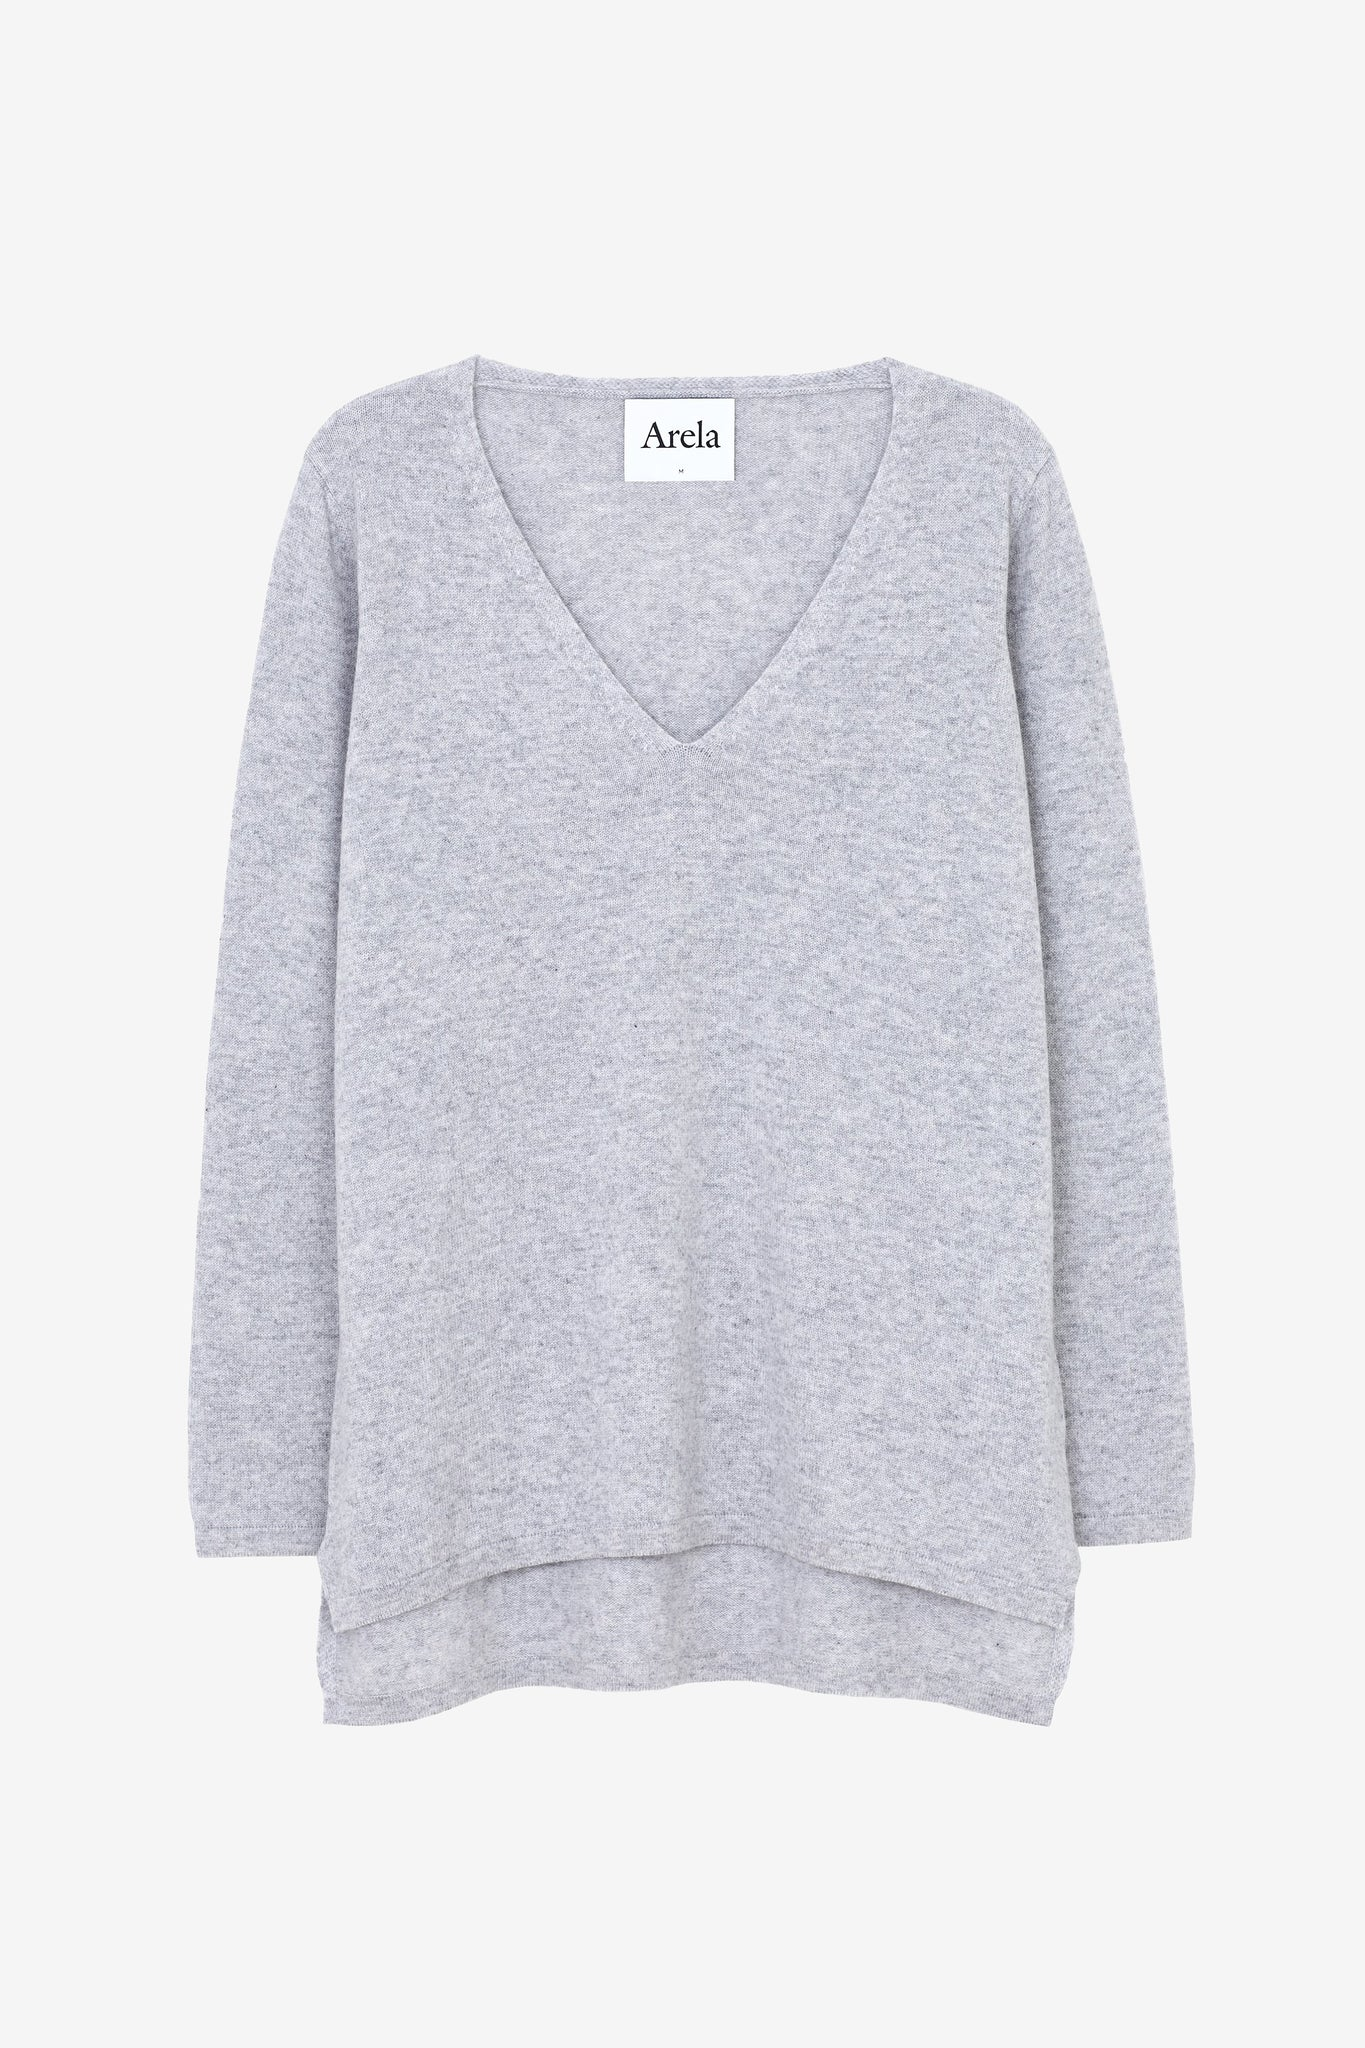 Vija sweater in light grey